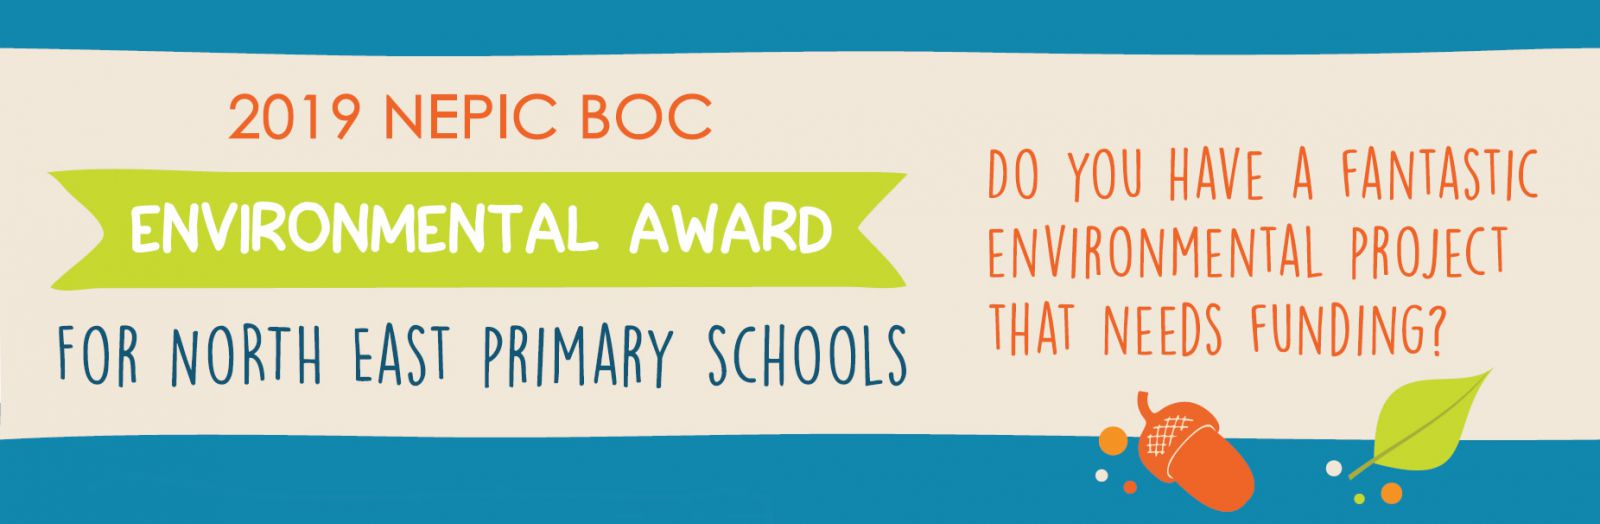 NEPIC BOC Environmental Award for North East Primary Schools - win £2000